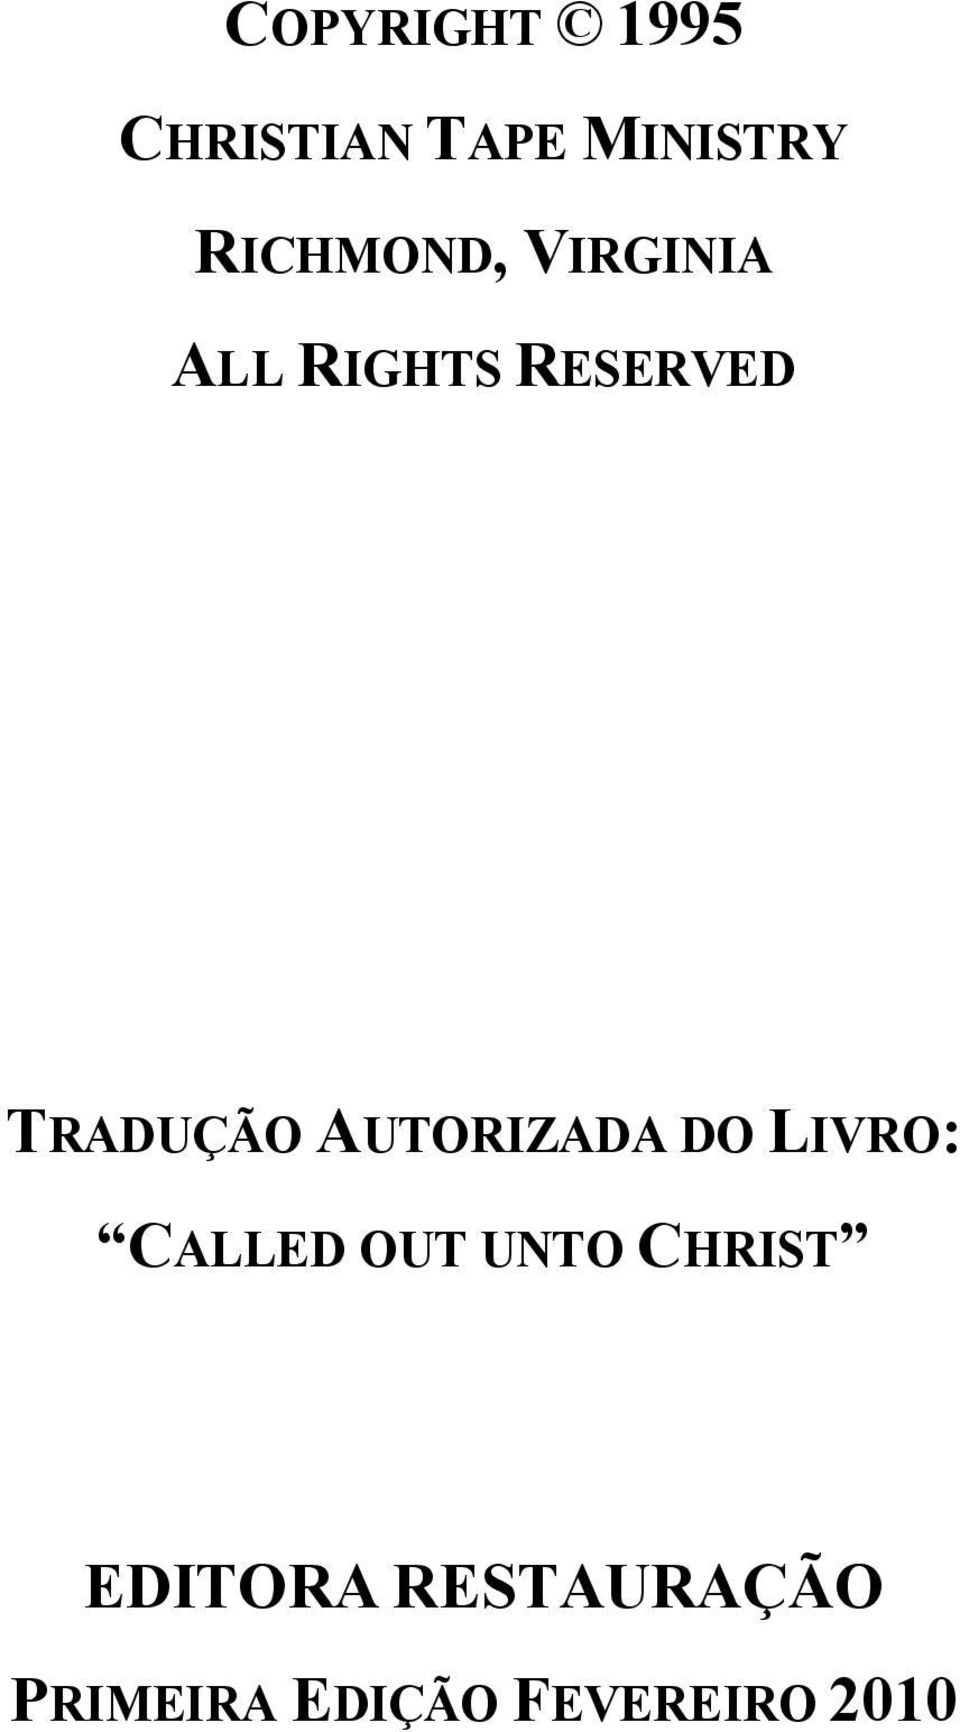 AUTORIZADA DO LIVRO: CALLED OUT U TO CHRIST